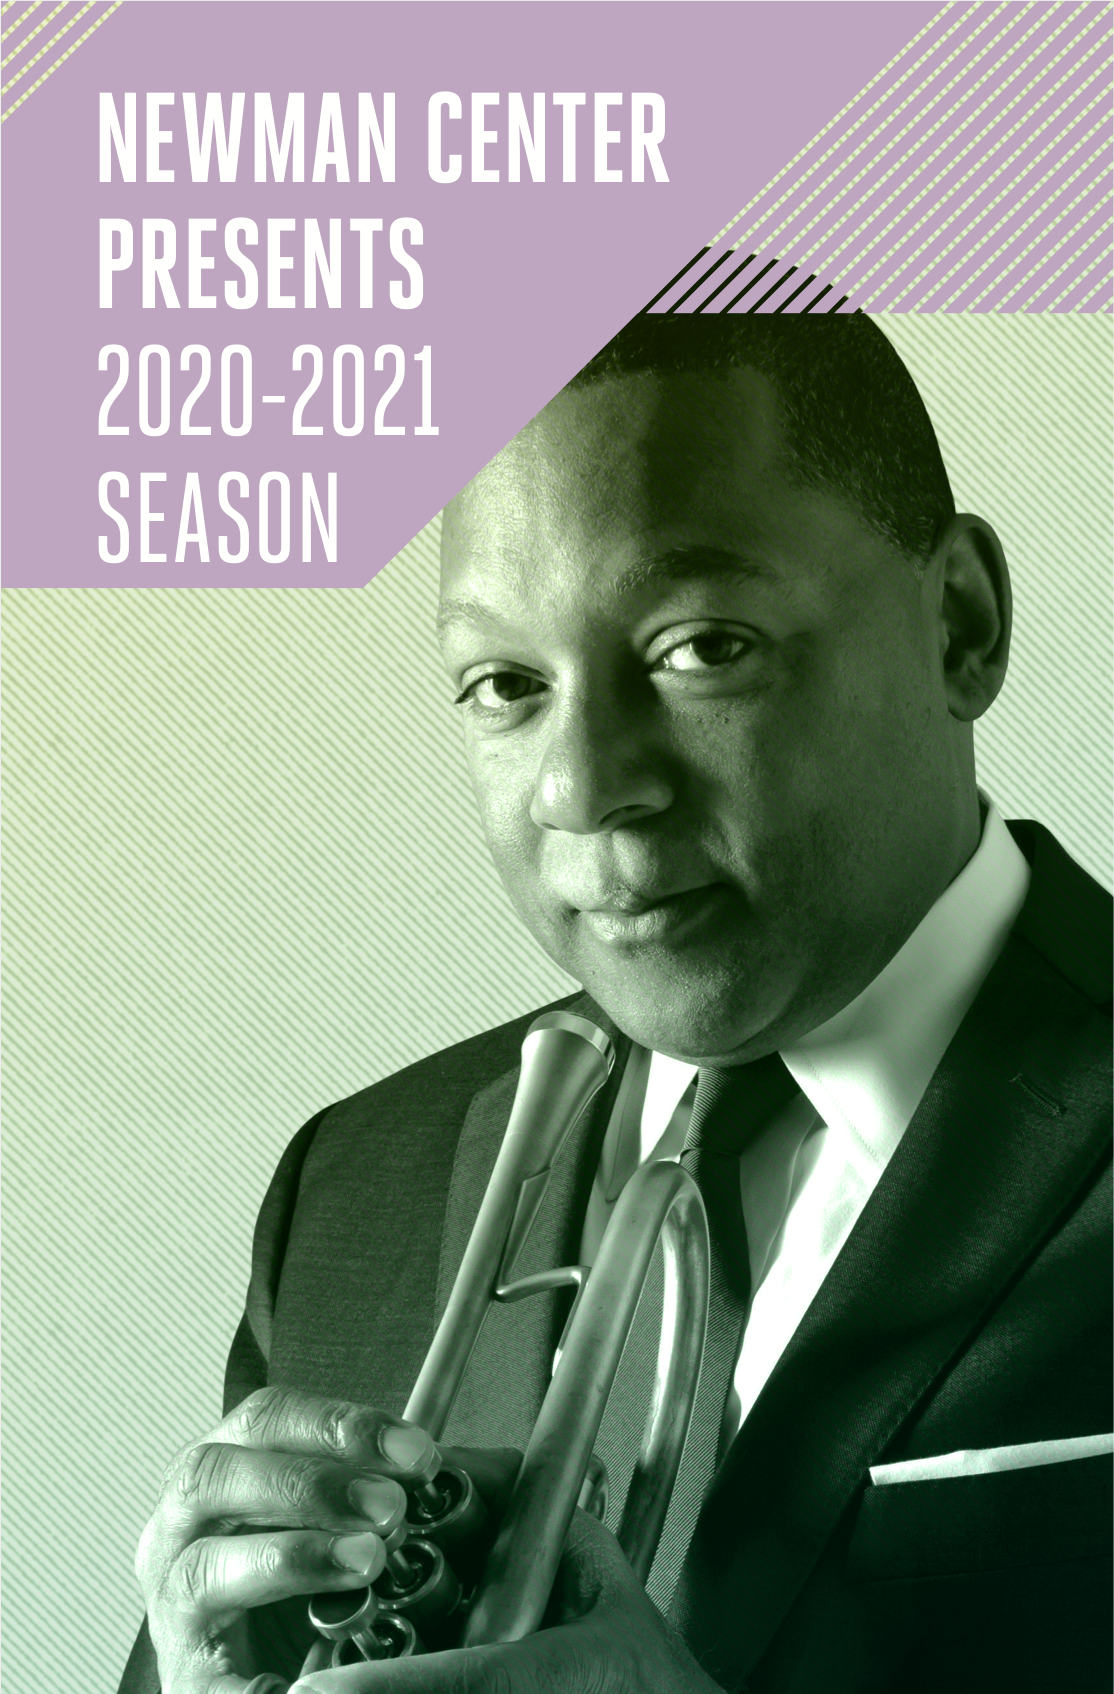 2020-2021 NCP Season Brochure PDF